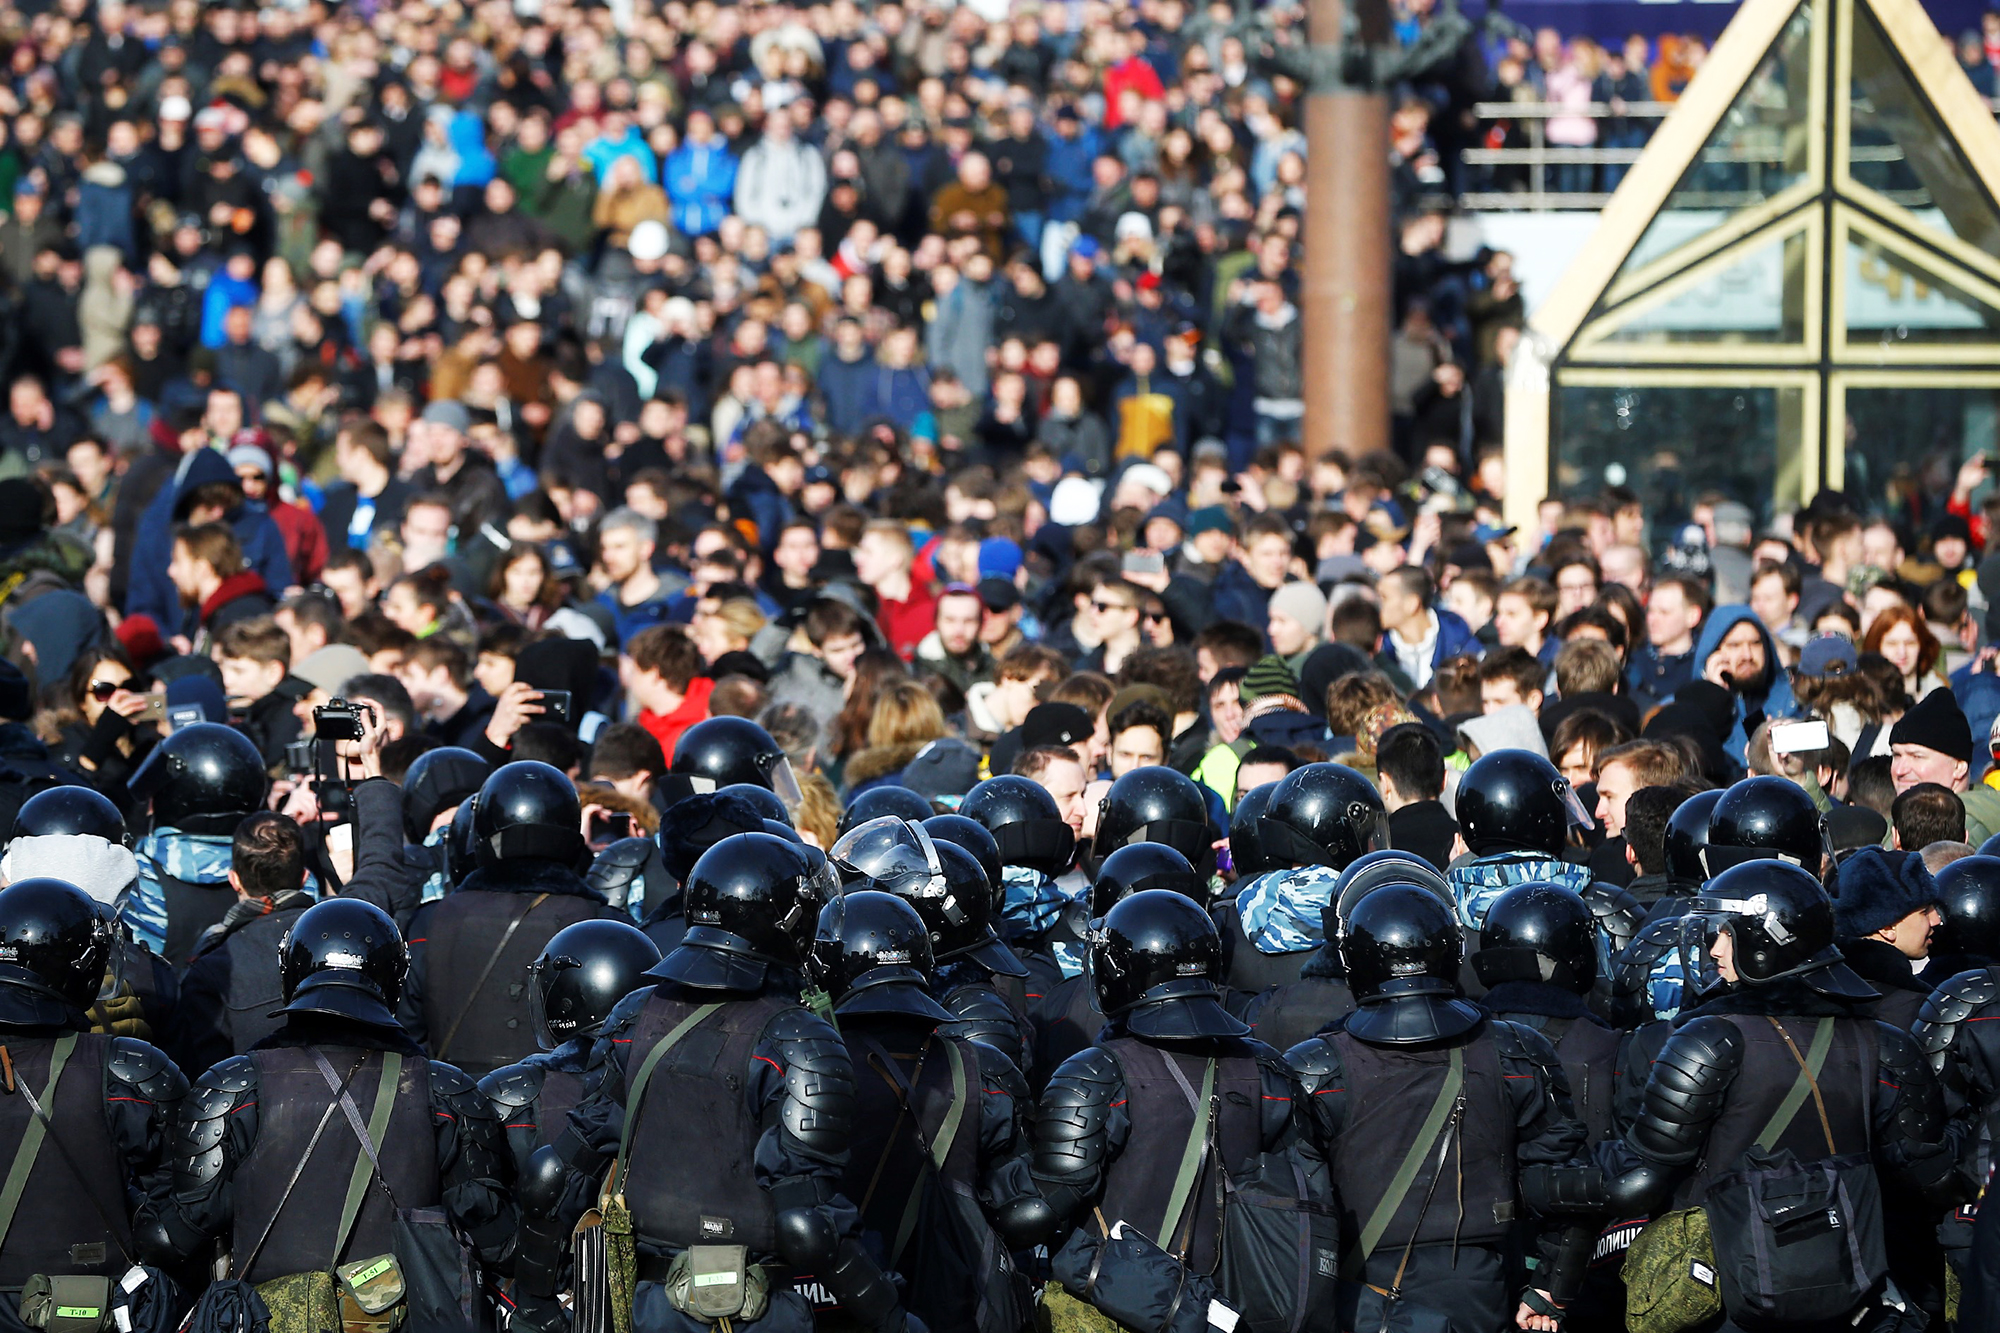 Russian riot policemen stand guard as people take part in an opposition rally in Moscow, on March 26, 2017.